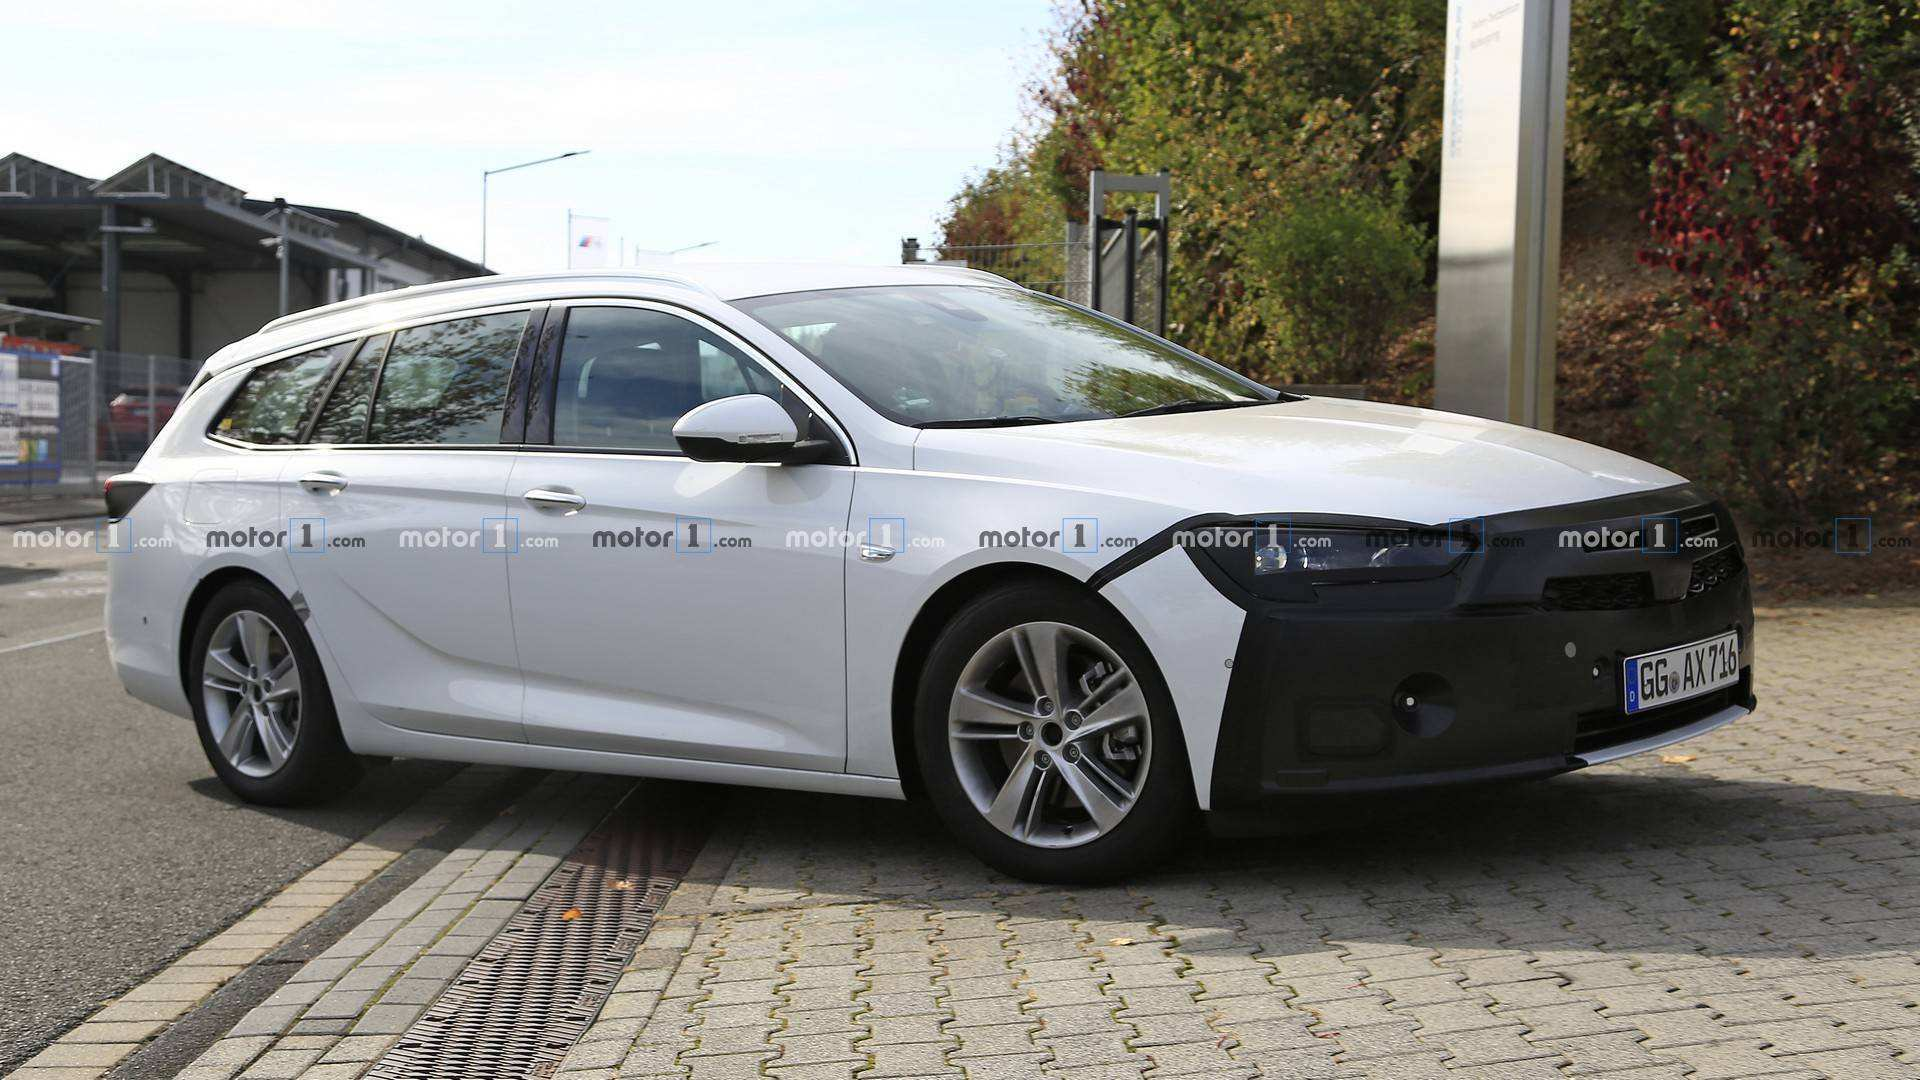 96 All New New Opel Insignia 2020 Ratings with New Opel Insignia 2020